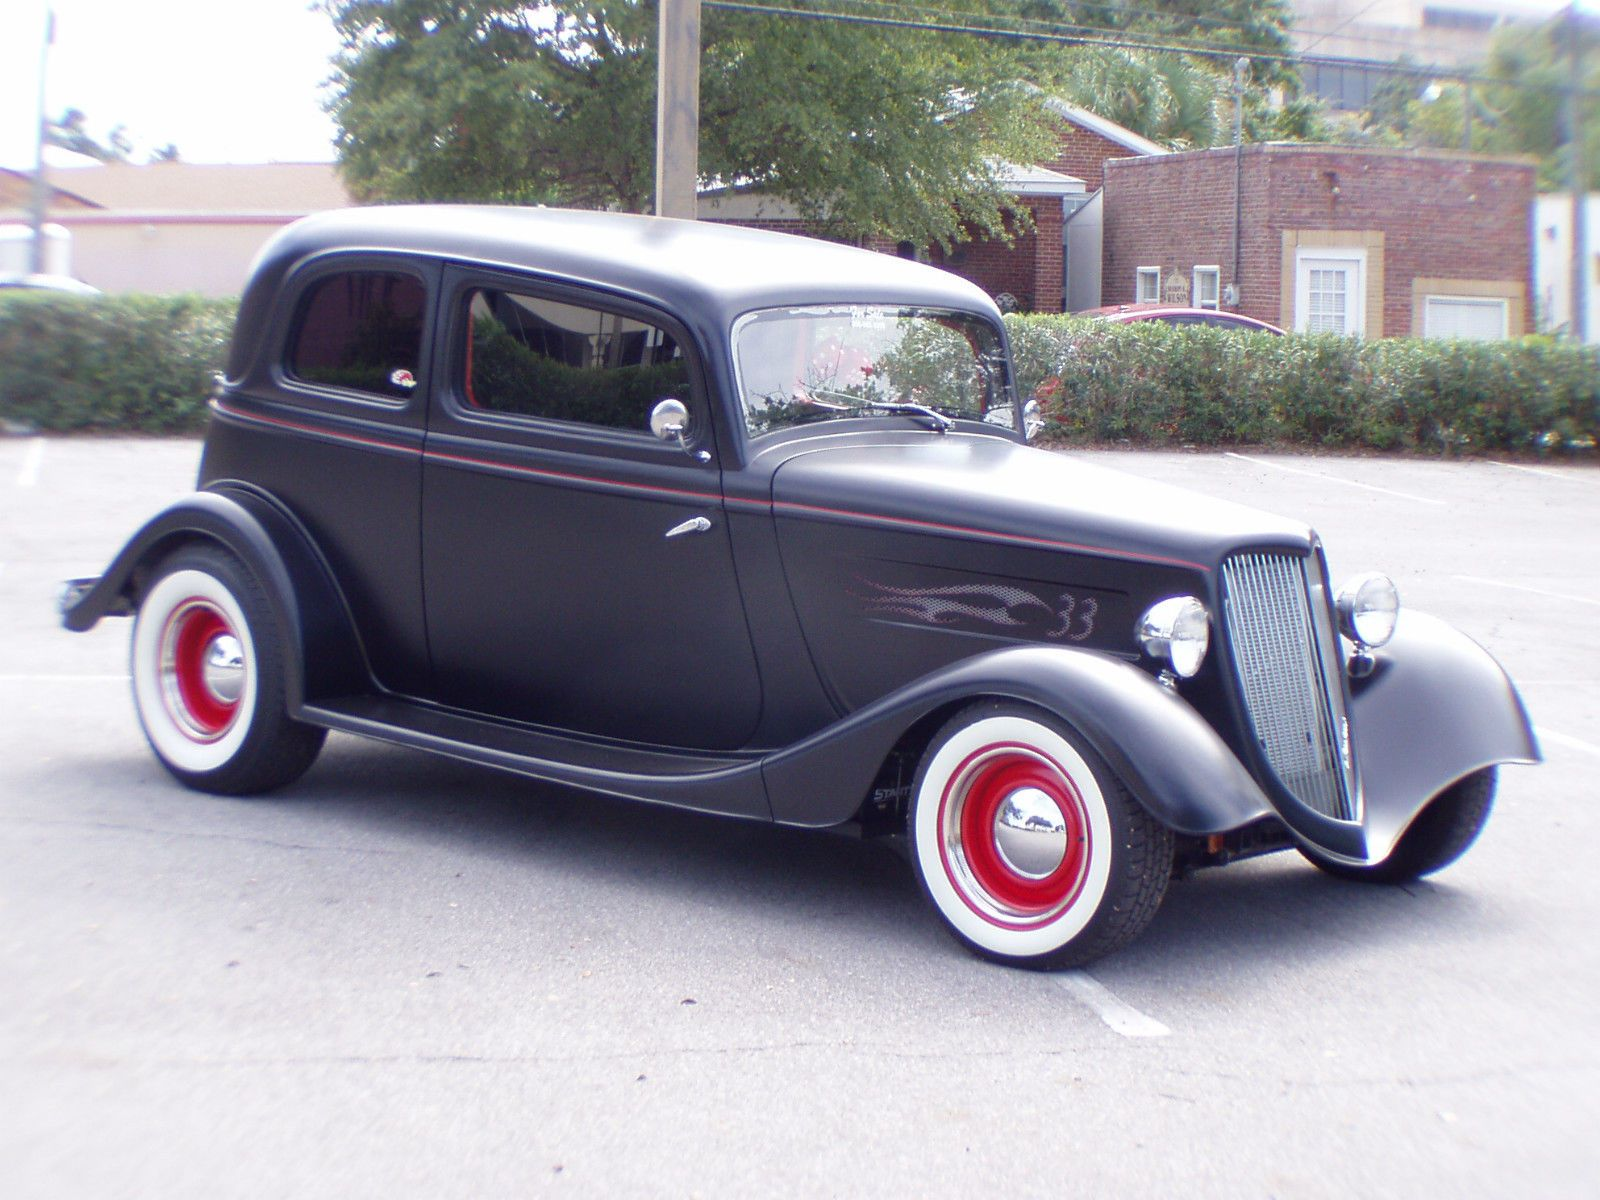 1933 Ford Vicky Street Rod | American Hot Rods | Pinterest | Ford